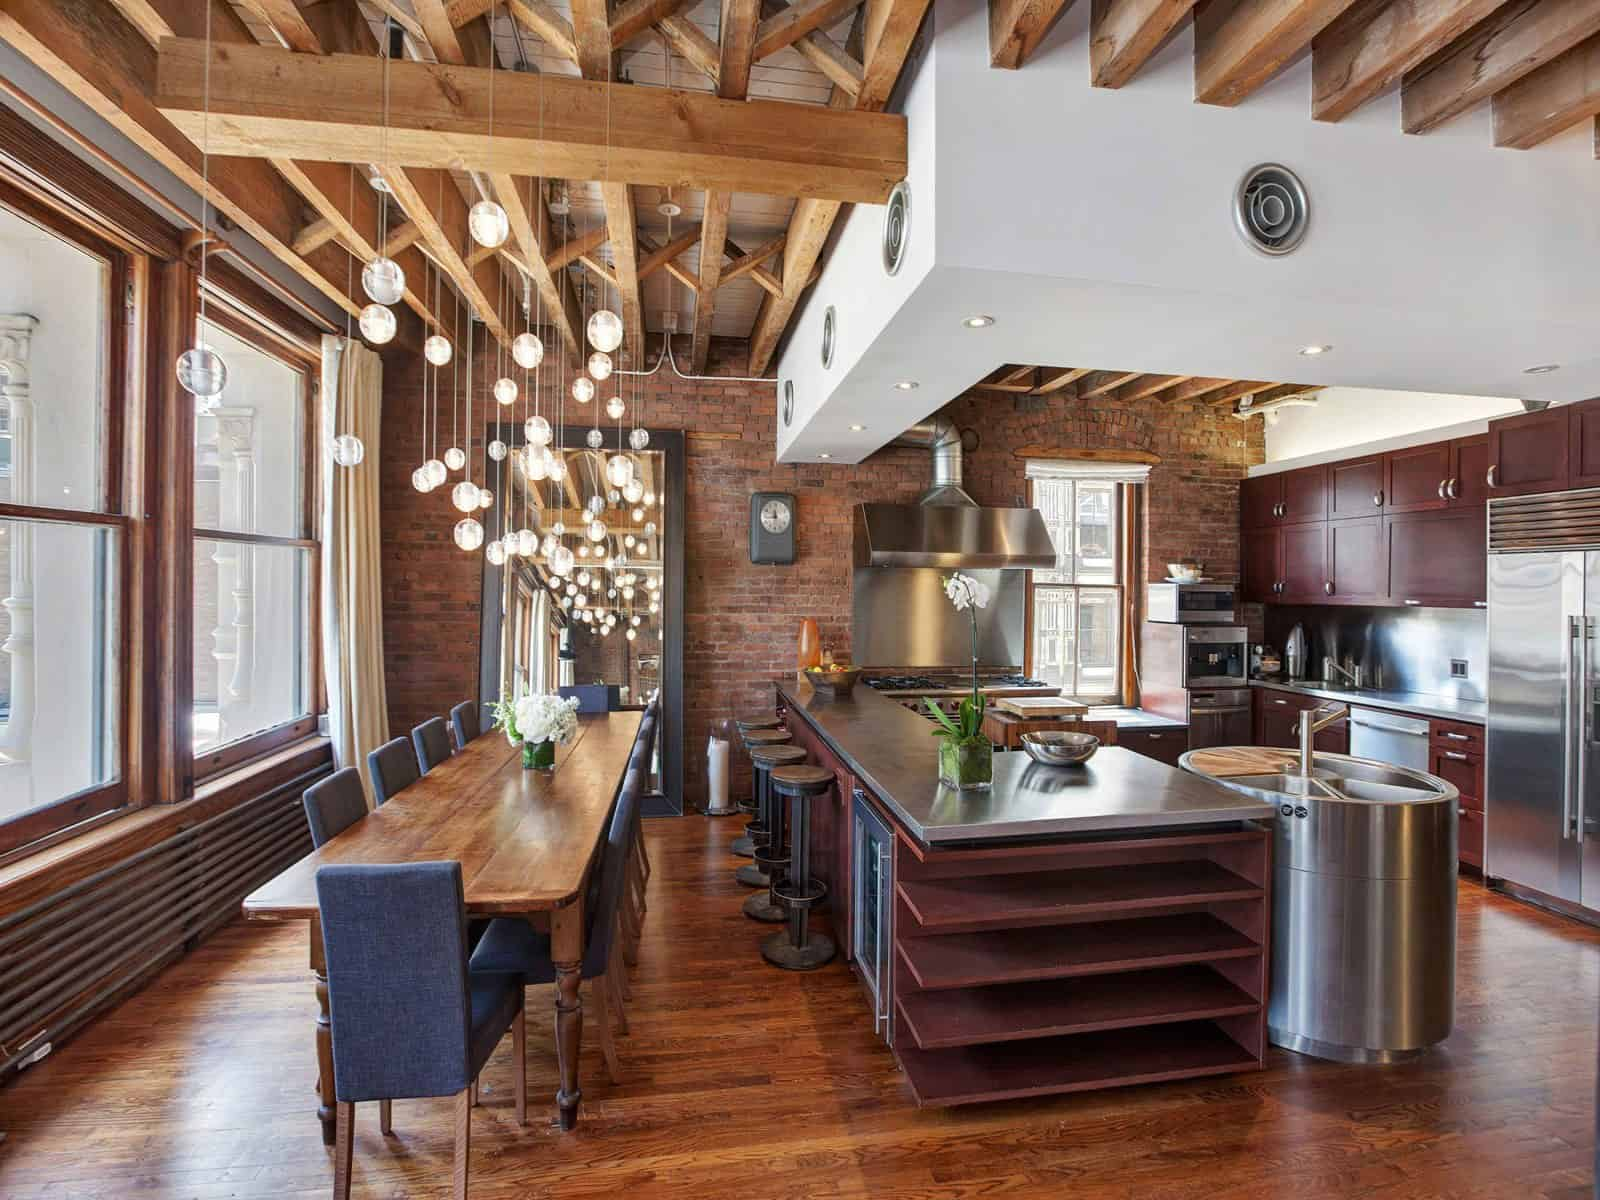 Open Plan Apartment With Exposed Wood Beams And Iron Columns